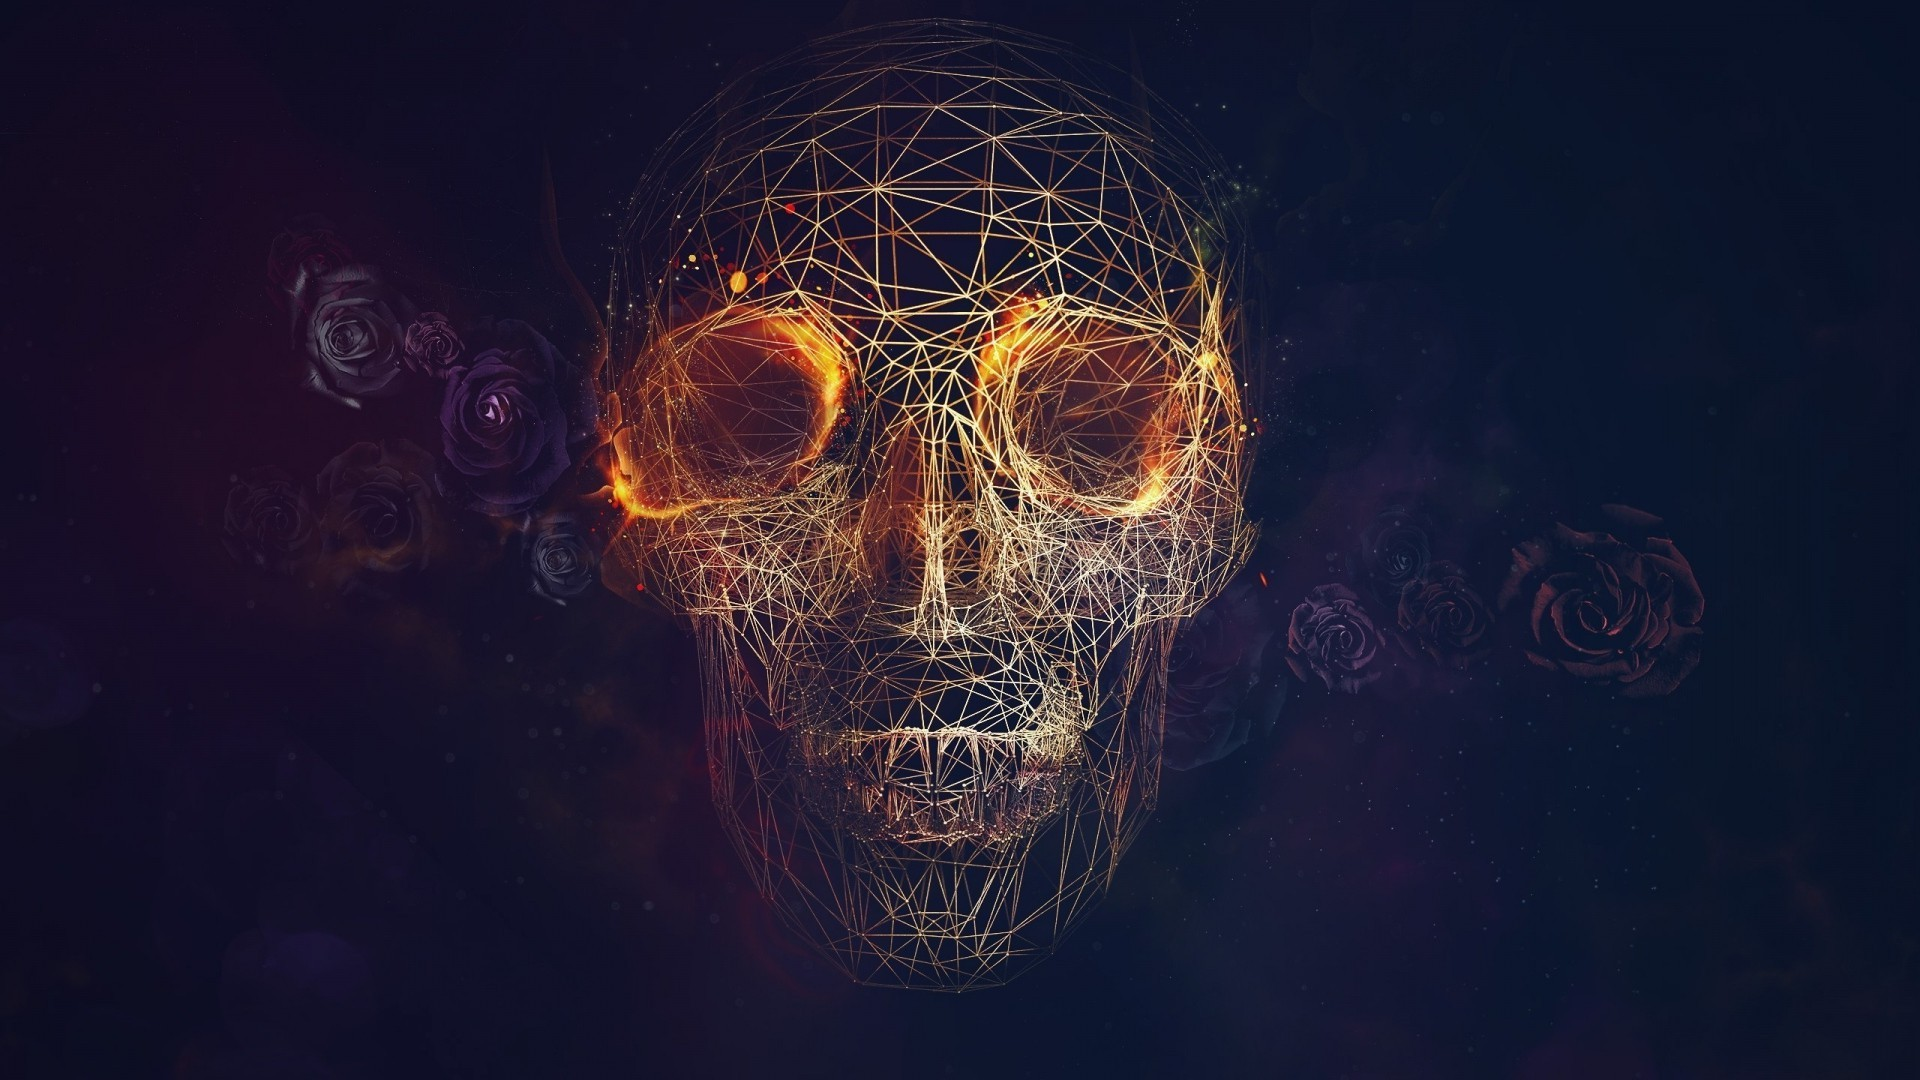 1920x1080 wireframe, CGI, Skull, Fire, Rose, Vectors, Lines, Blue Background  Wallpapers HD / Desktop and Mobile Backgrounds